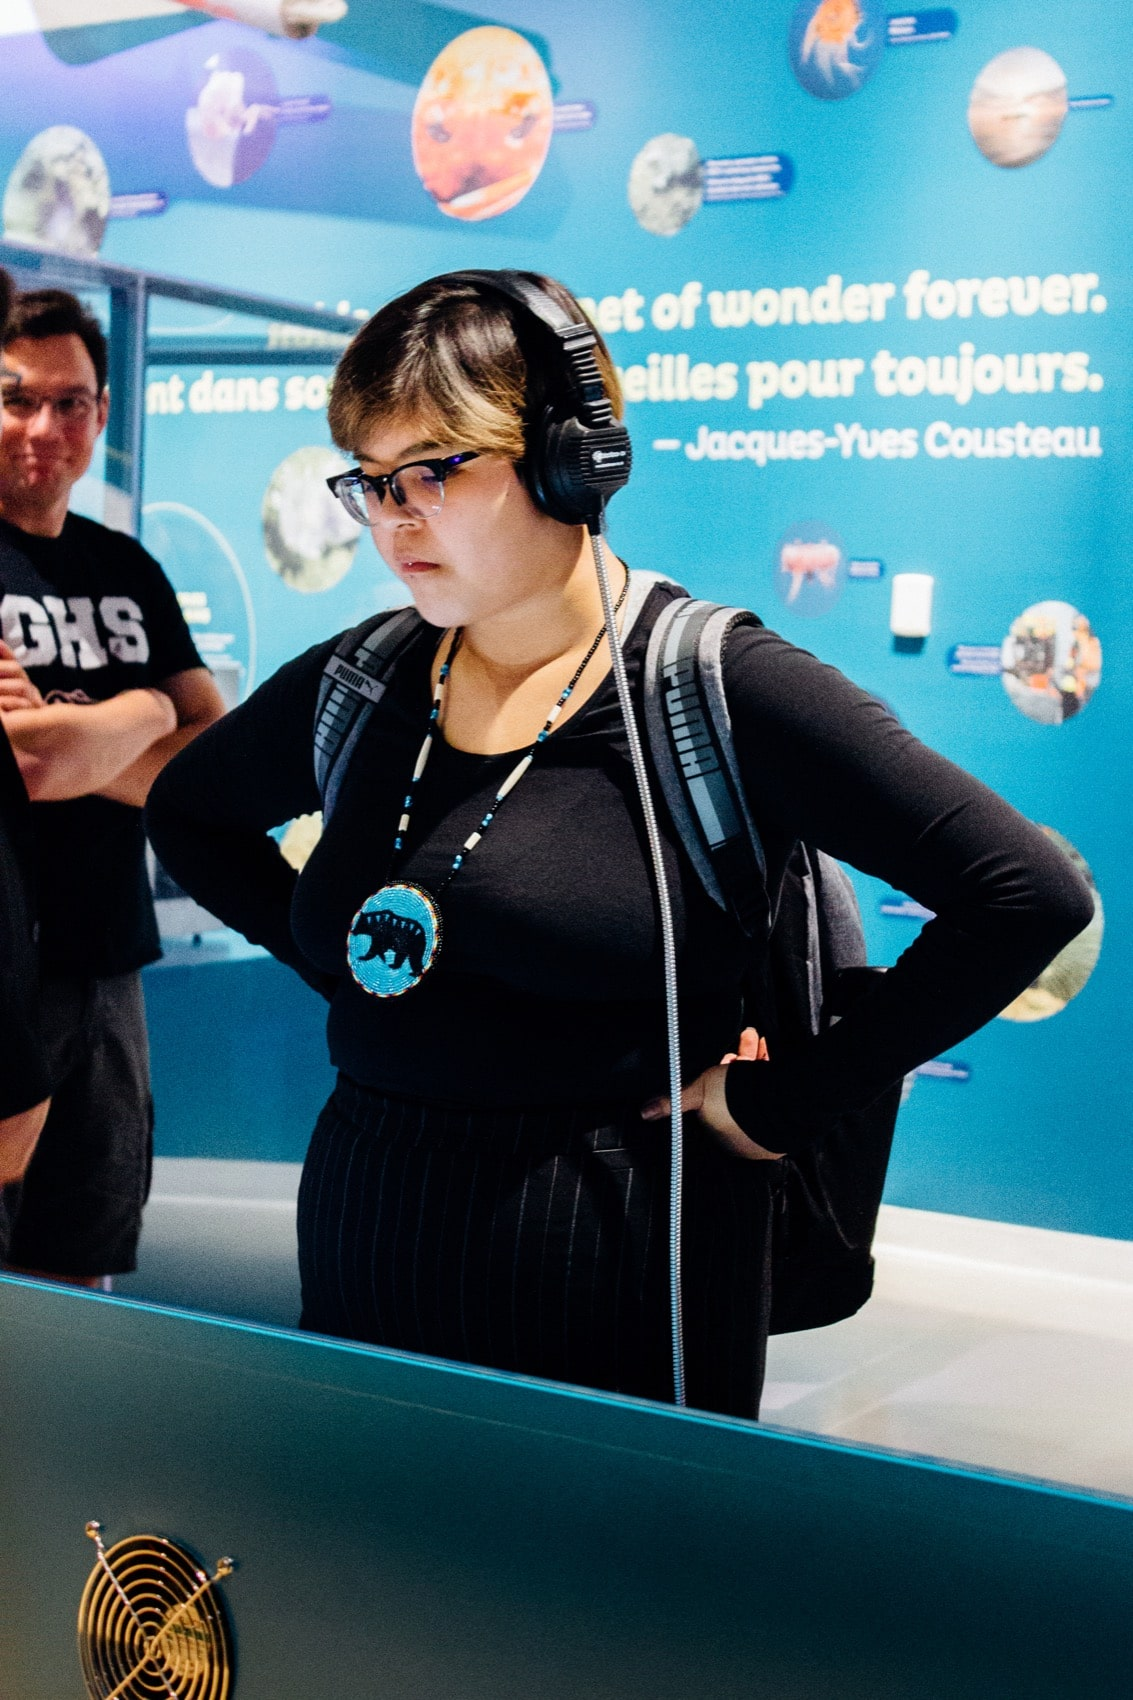 a student at a museum with headphones on listening to an exhibit